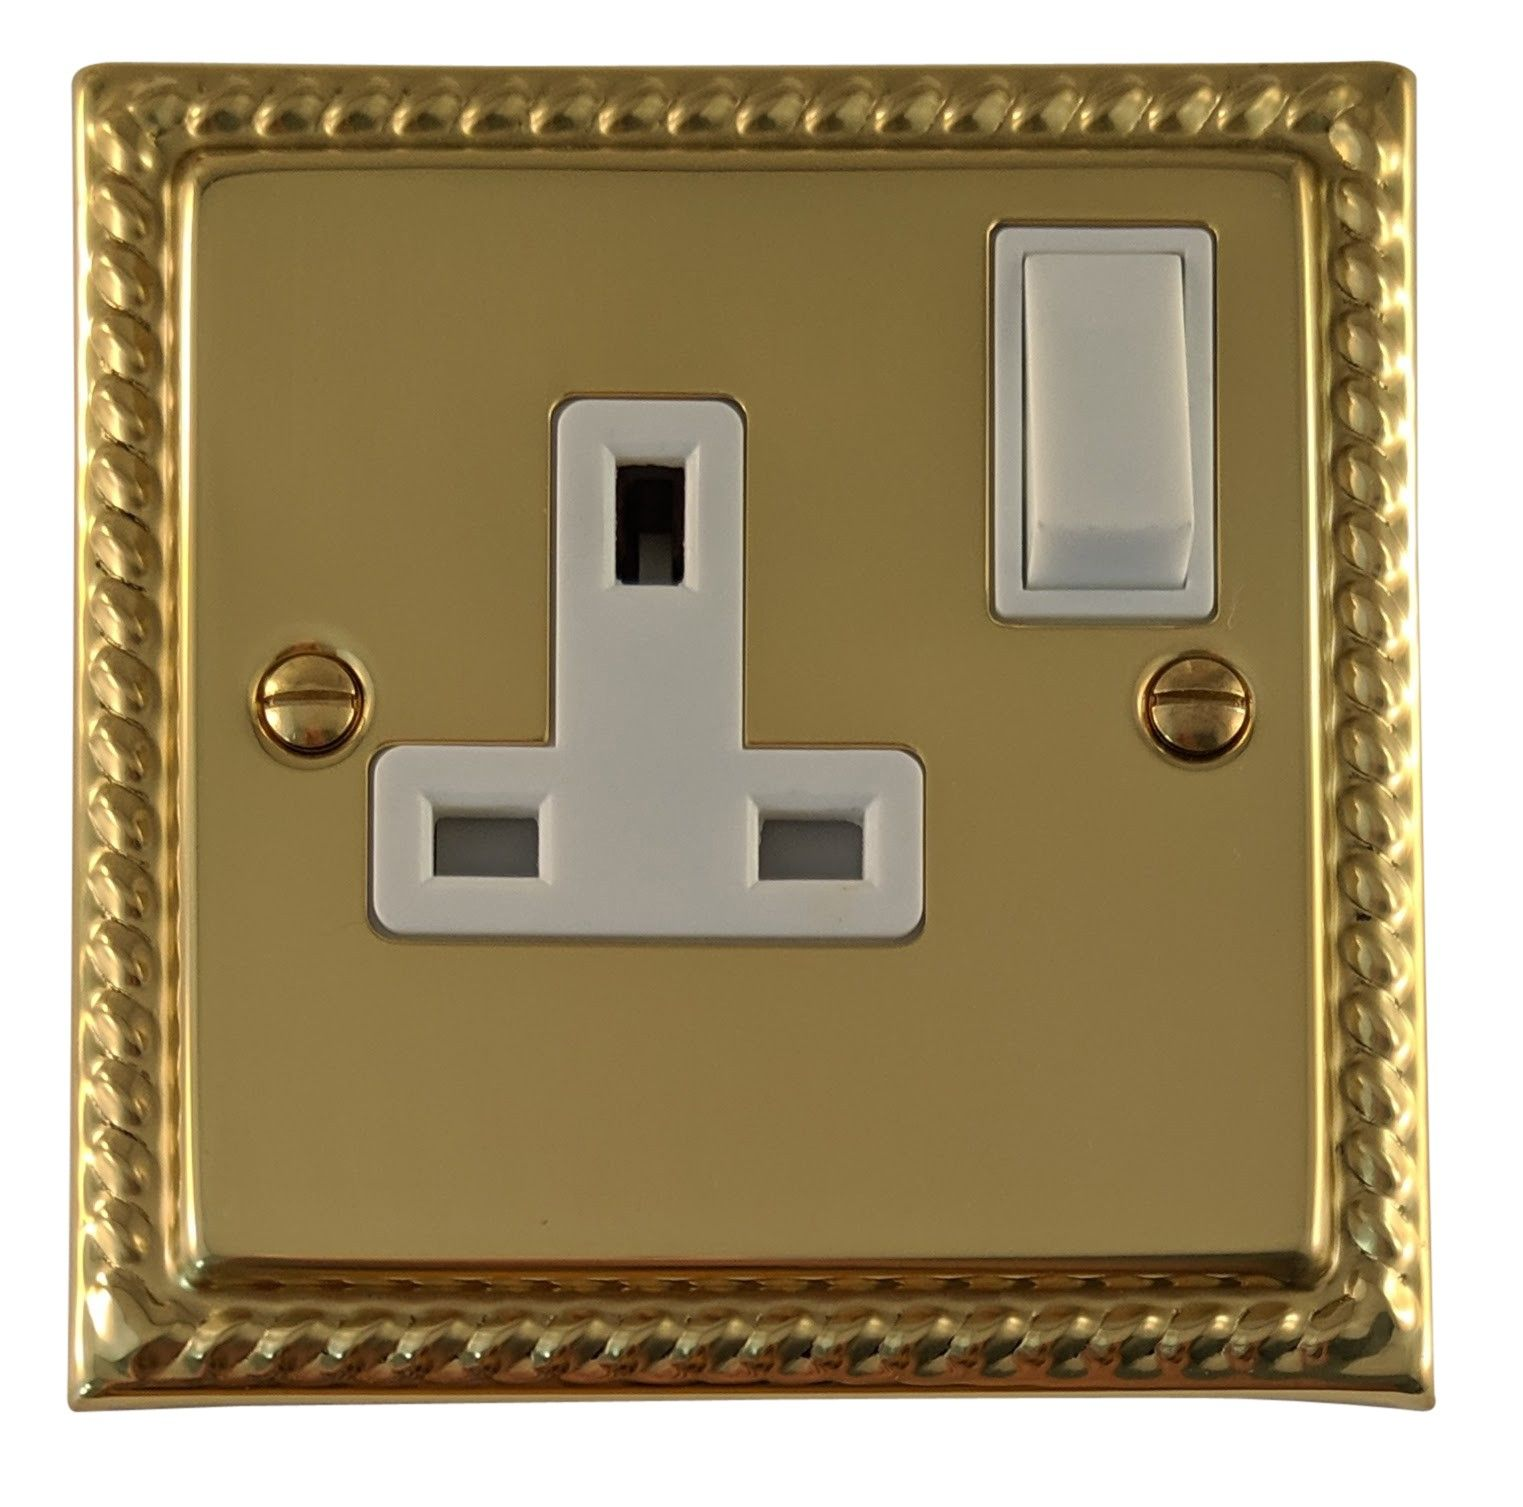 G&H MB9W Monarch Roped Polished Brass 1 Gang Single 13A Switched Plug Socket